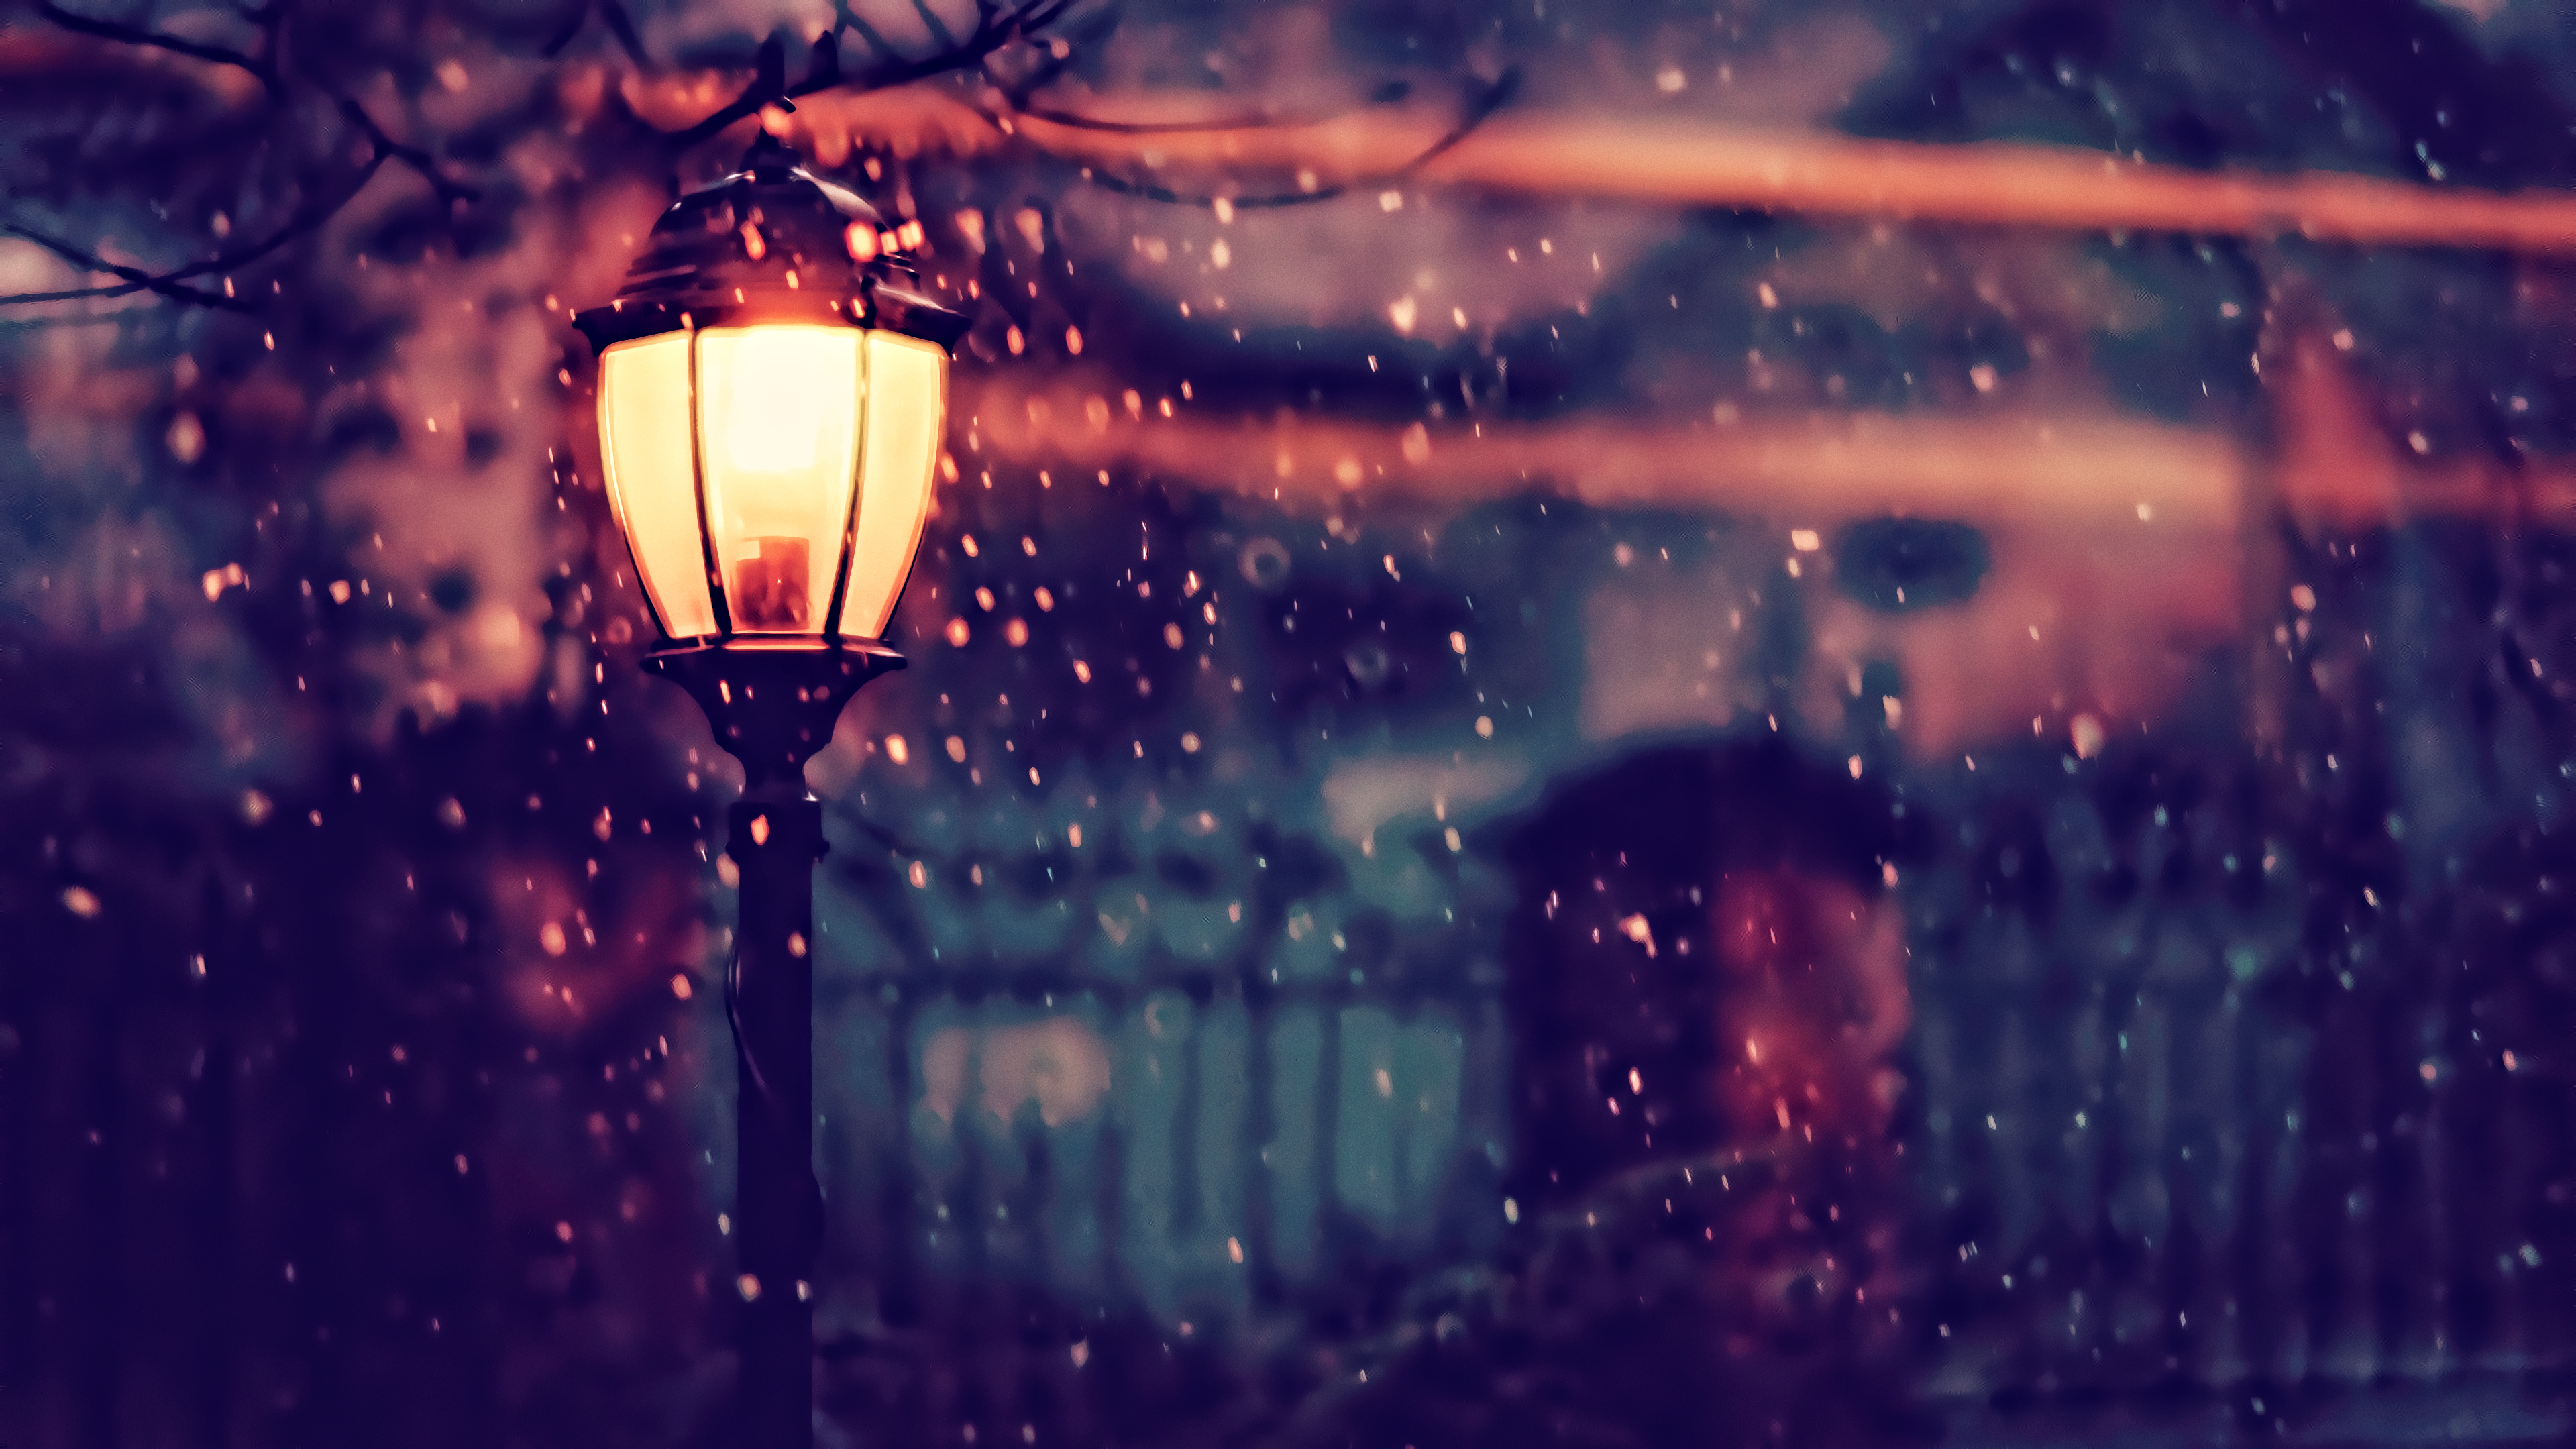 1440x900 Street Light Winter 4k 1440x900 Resolution Hd 4k Wallpapers Images Backgrounds Photos And Pictures